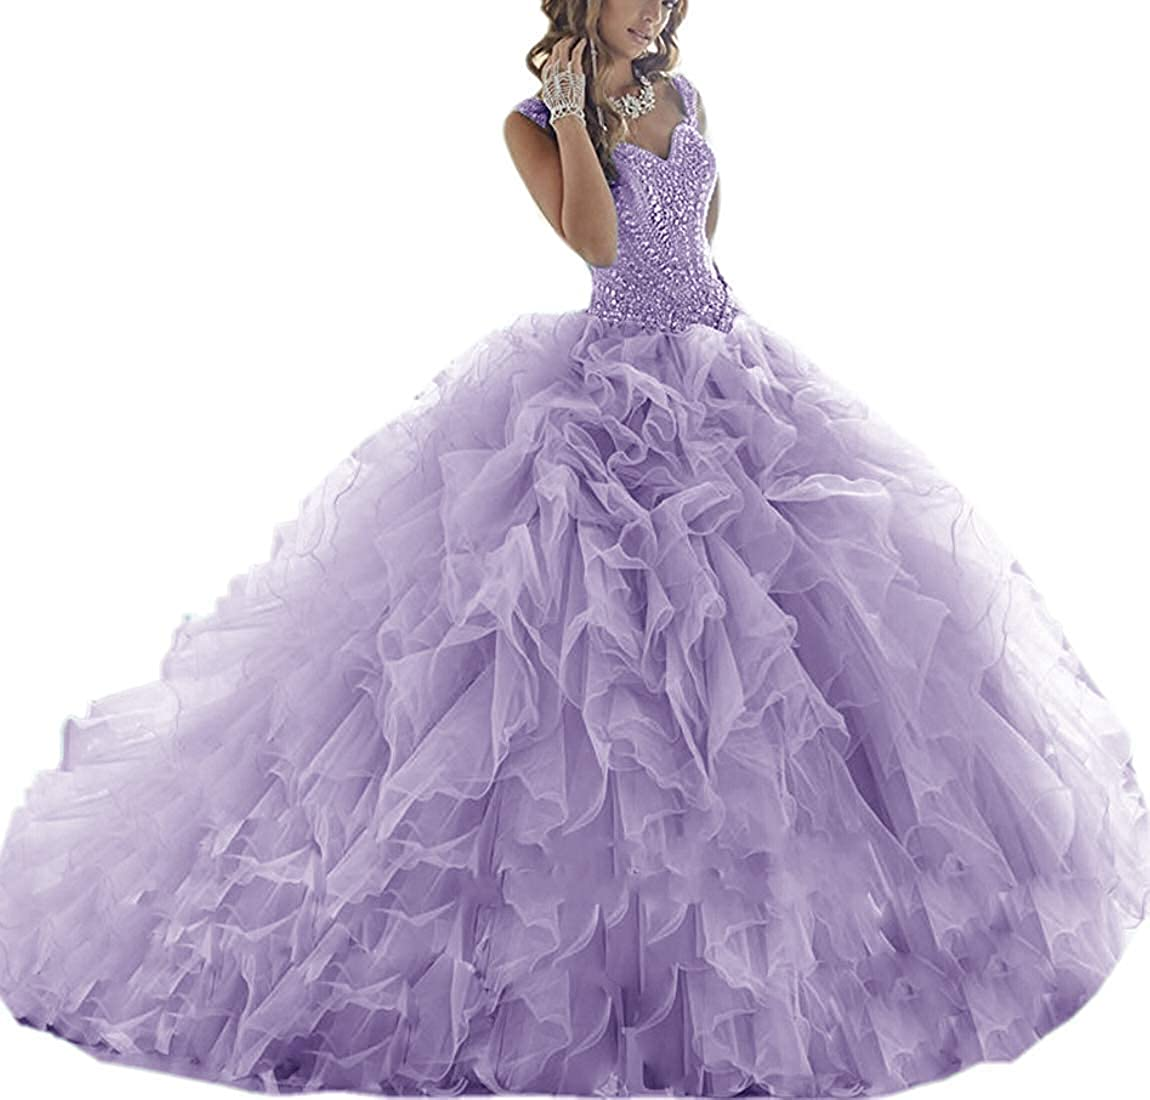 Lavender ASBridal Quinceanera Dresses Long Prom Party Dress Sweet 16 Crystals Beads Formal Ball Gowns Orangza